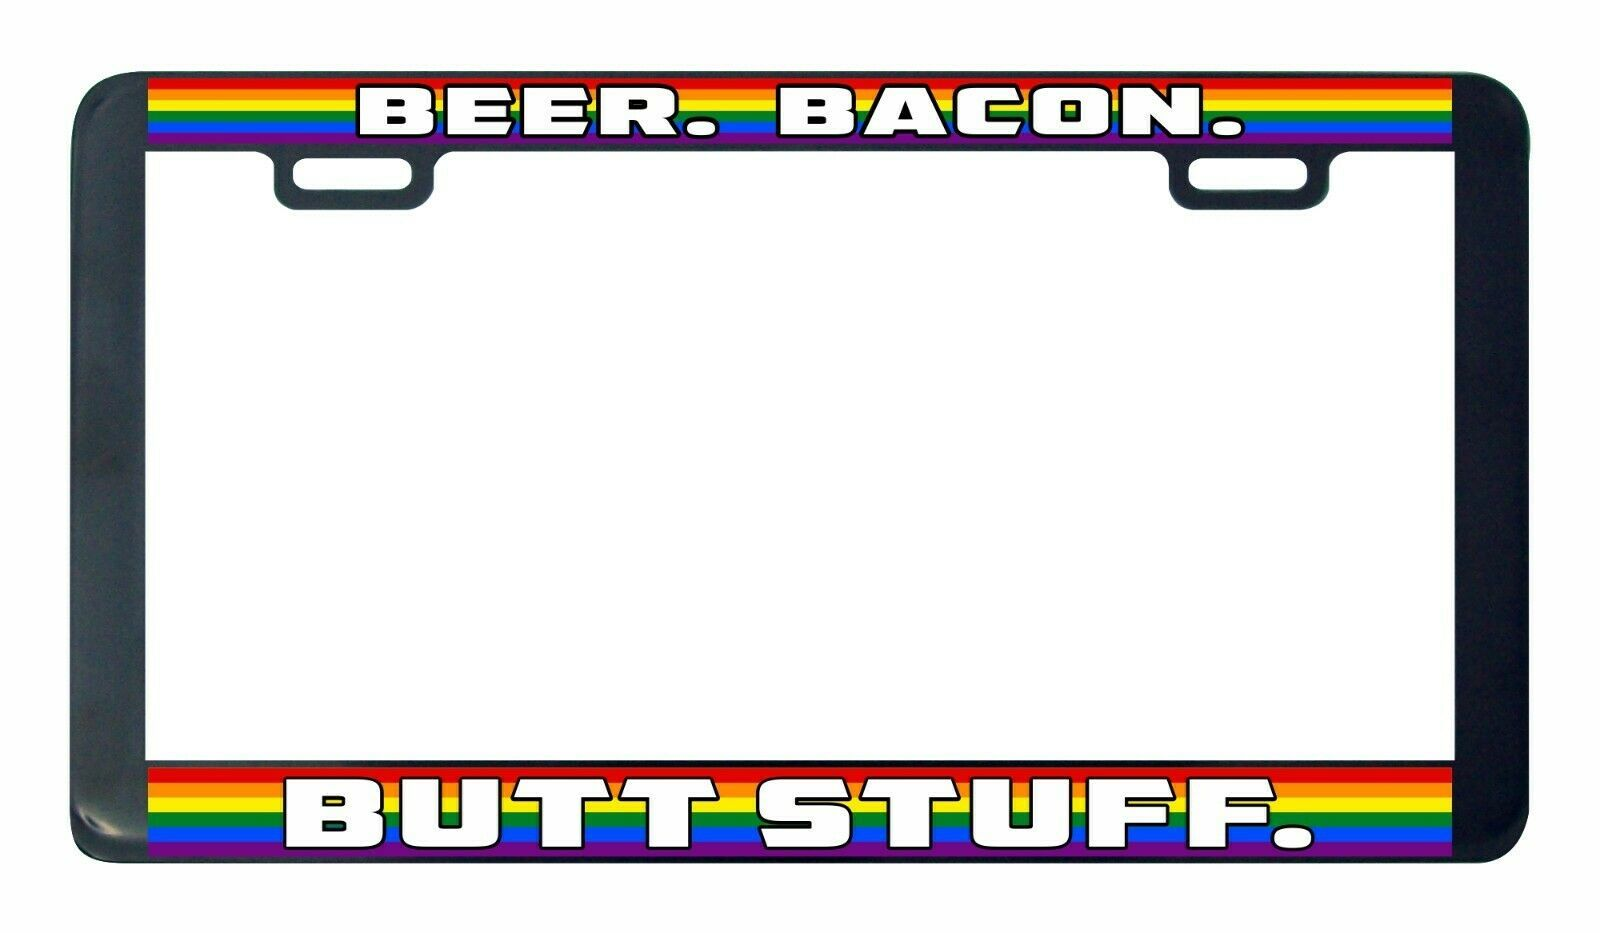 Primary image for Beer Bacon Butt Stuff Gay Lesbian pride rainbow LGBTQ license plate frame